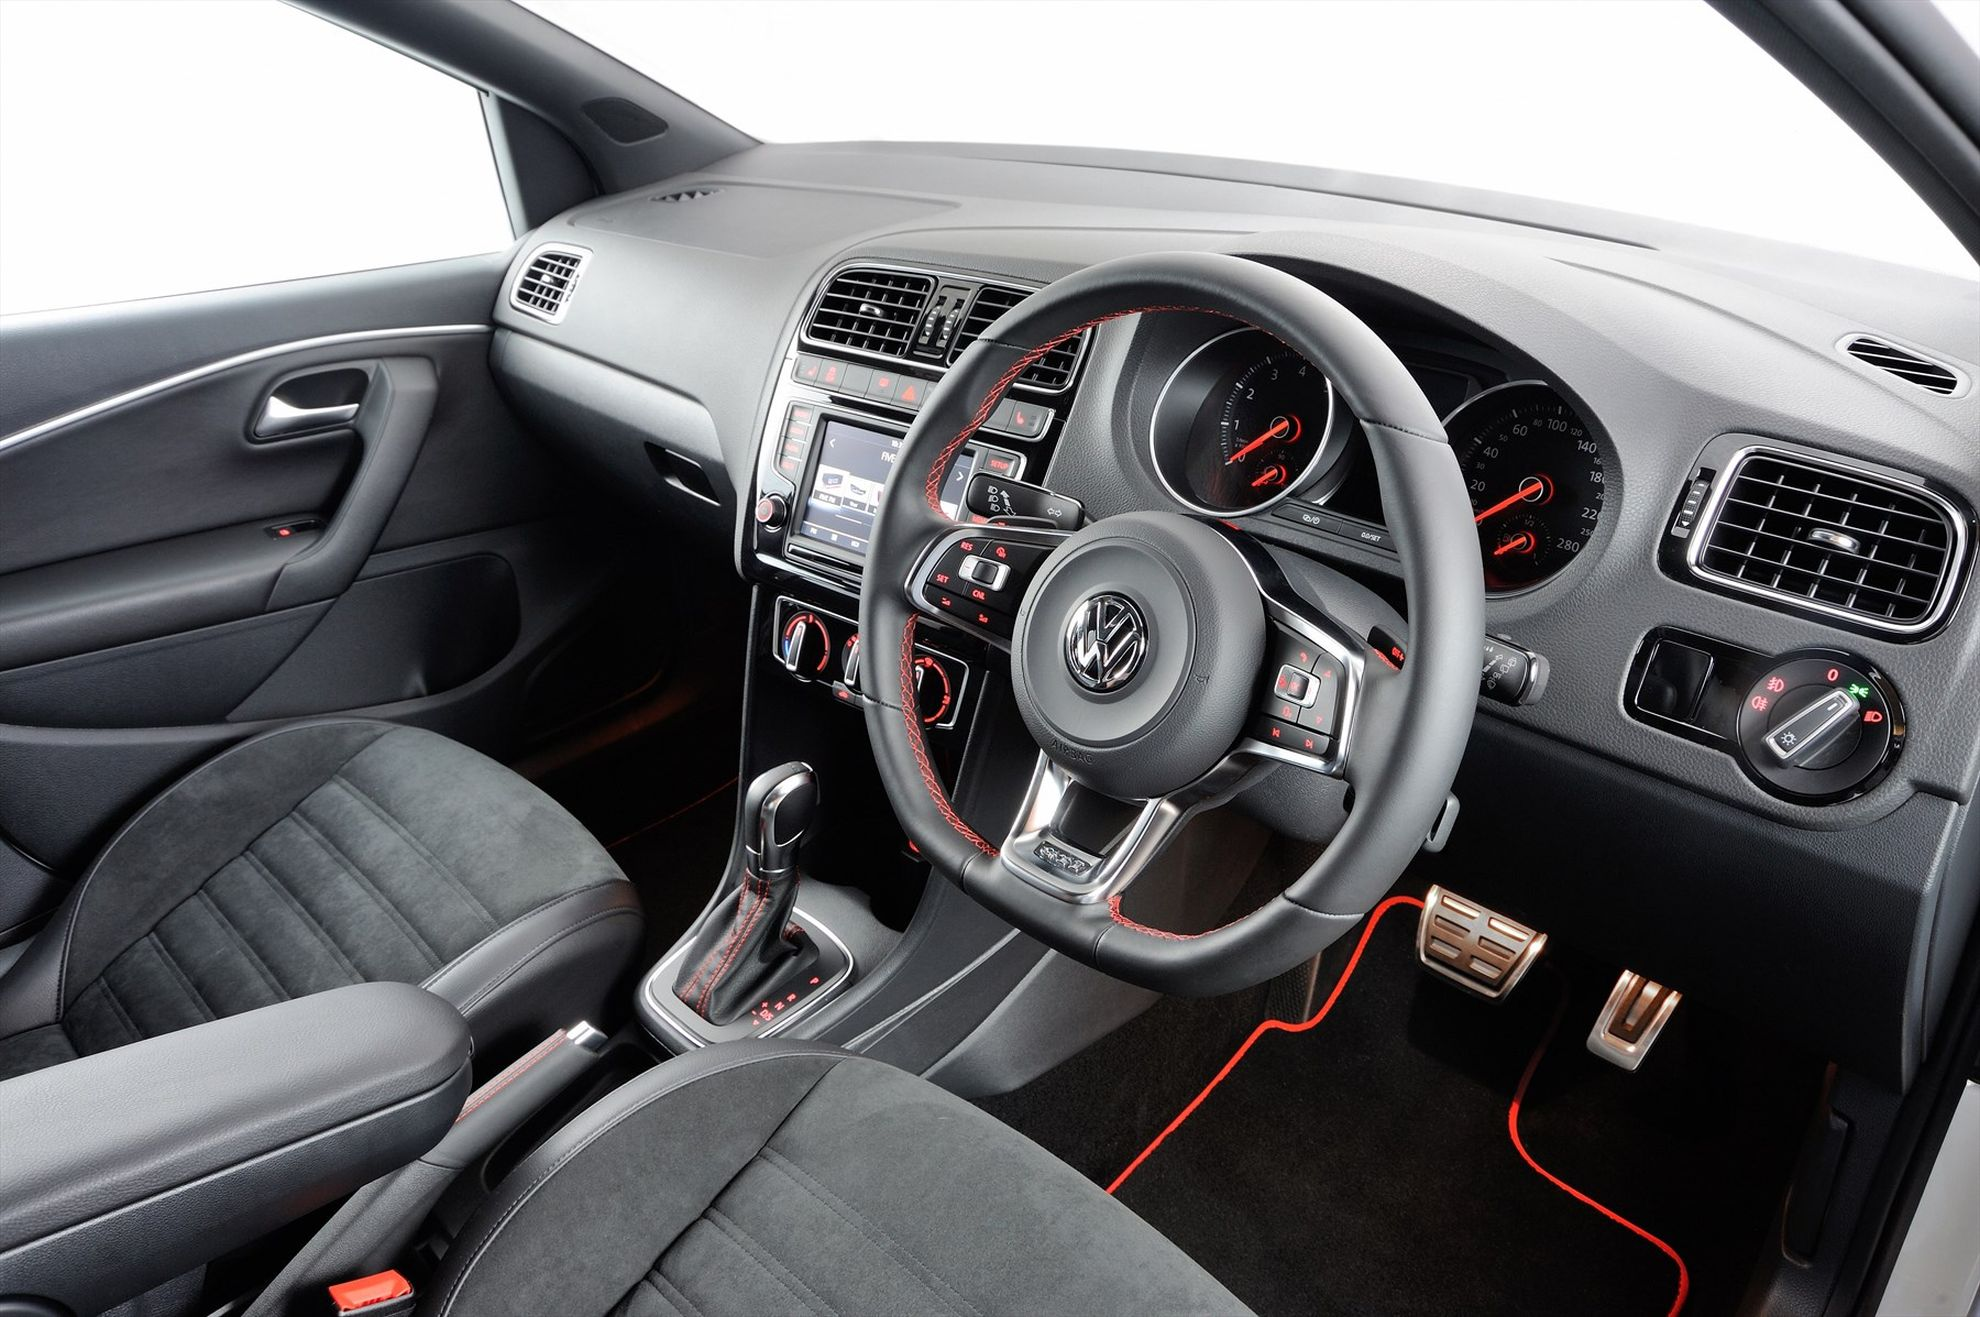 The-New-Volkswagen-Polo-GTI-in-South-Africa-interior